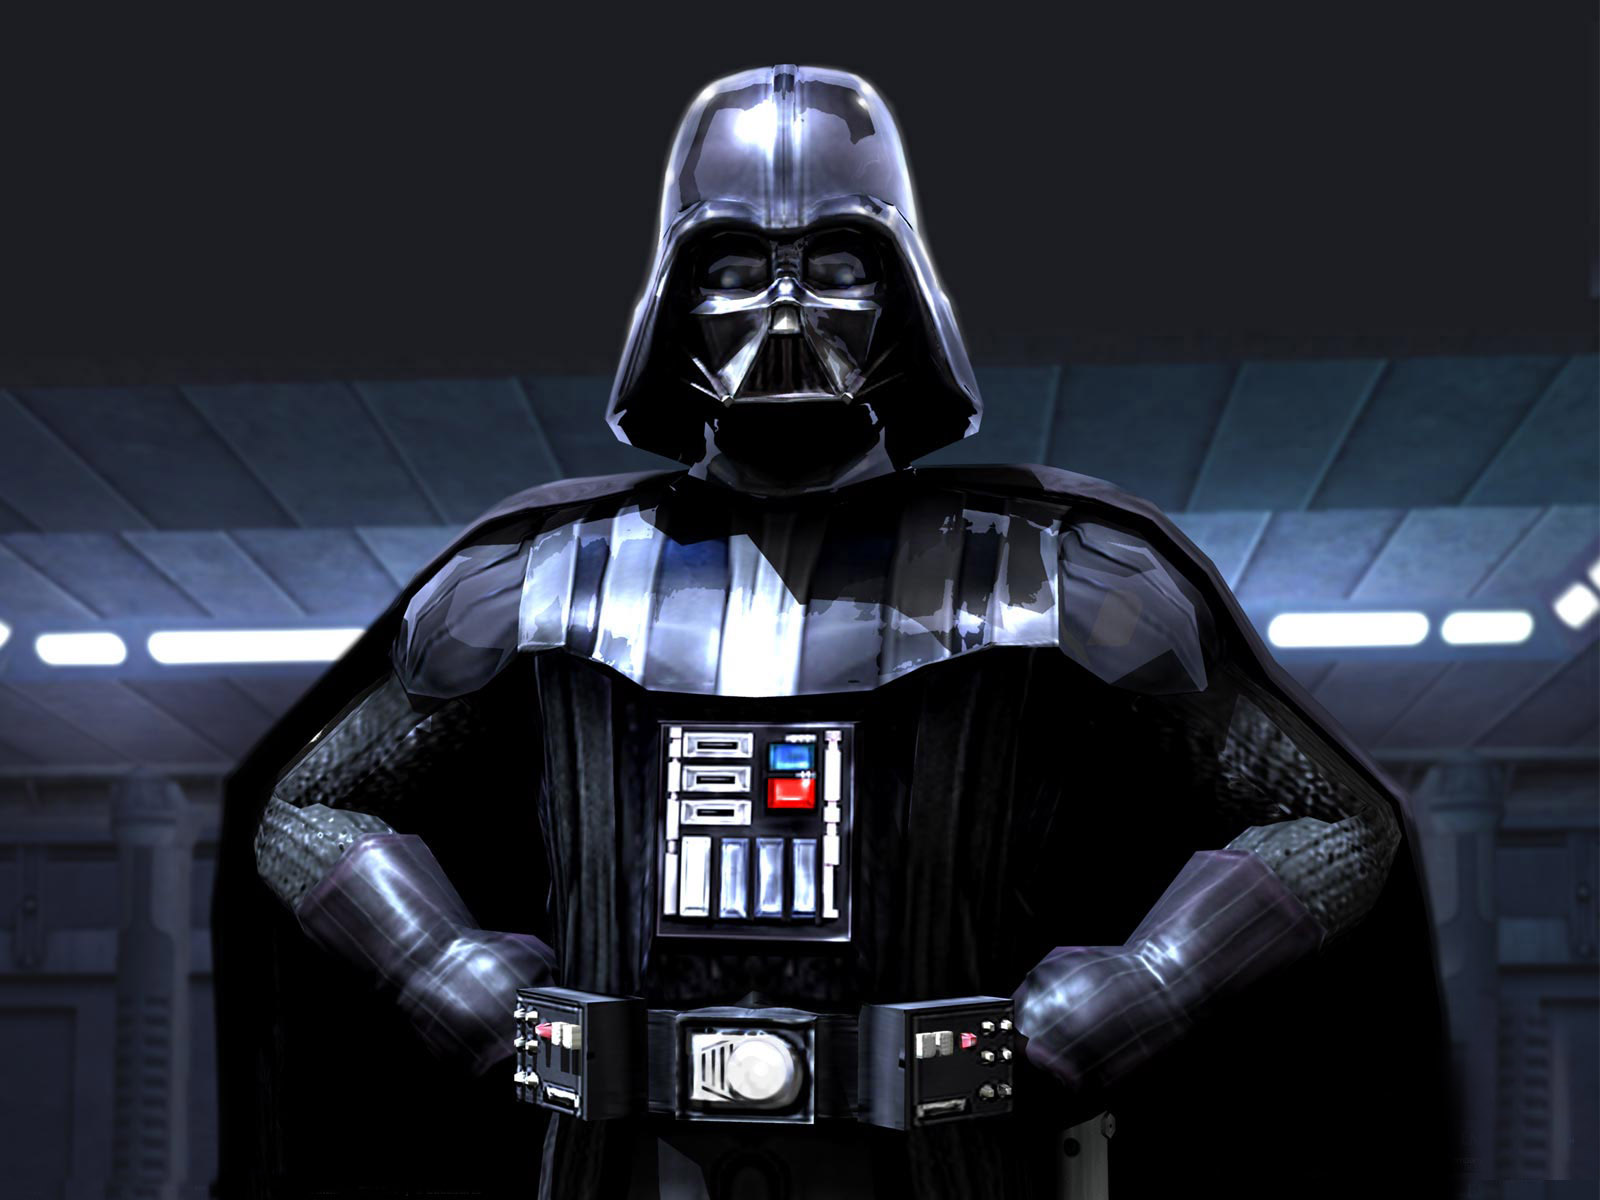 May The Force Be With You Star Wars - Darth Vader , HD Wallpaper & Backgrounds